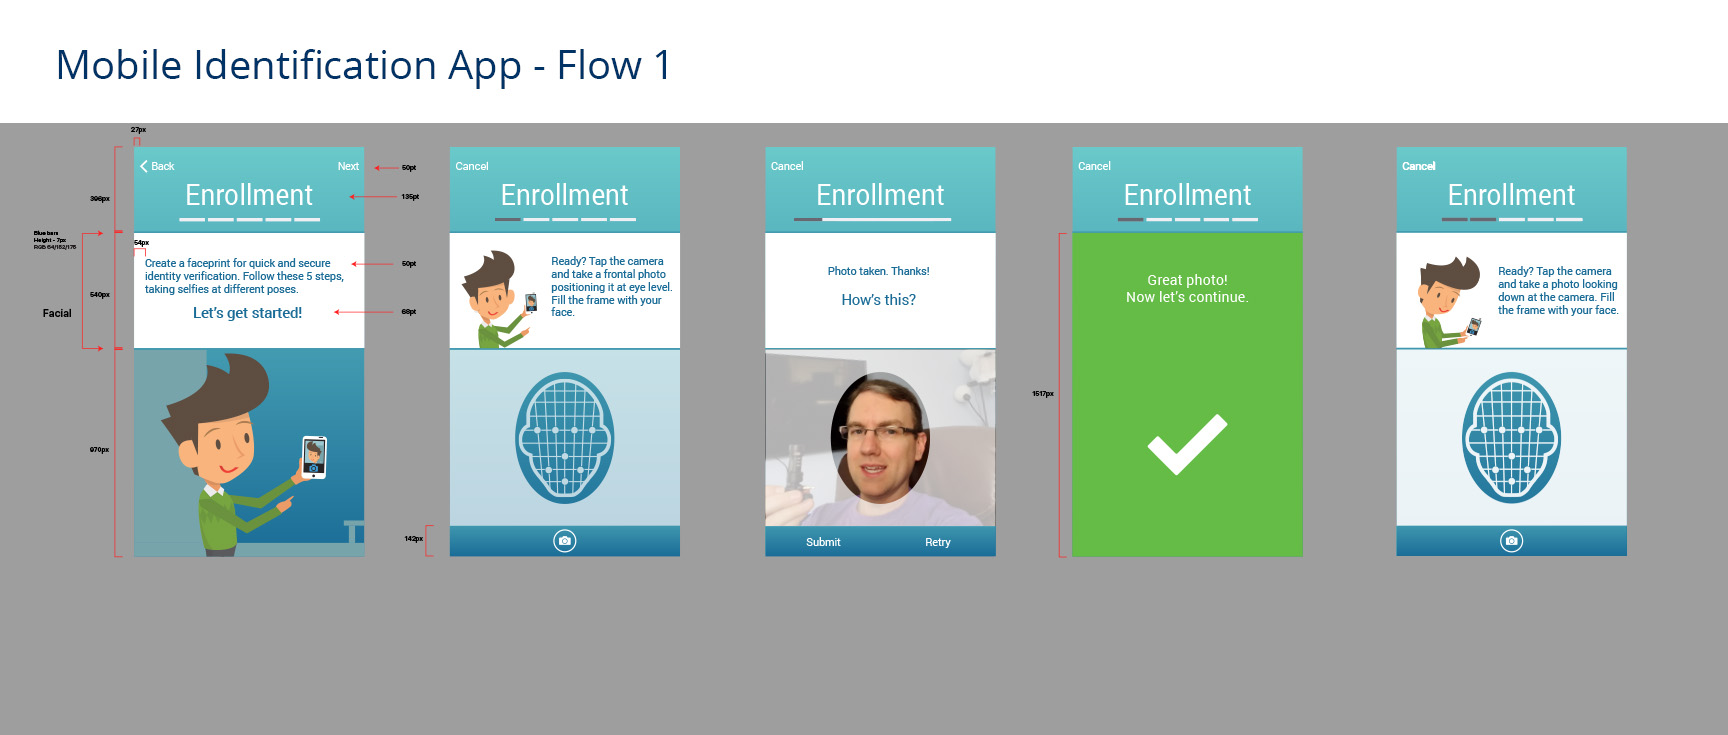 1st screen for user journey through enrollment process